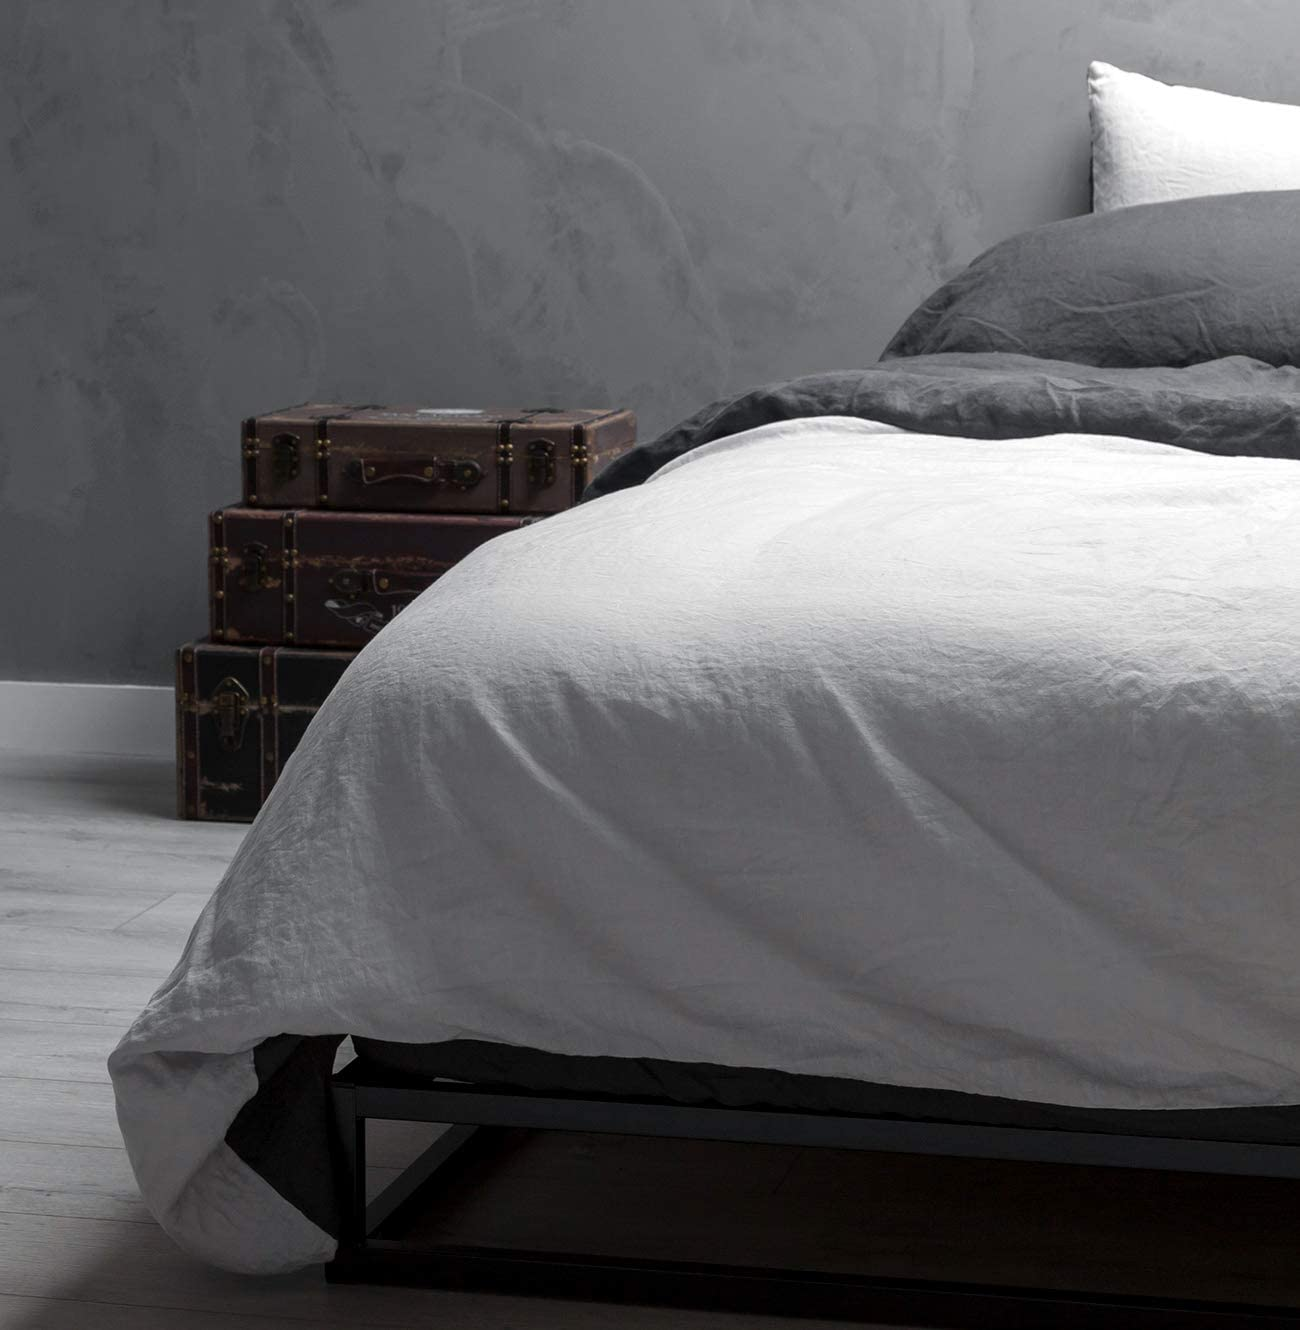 Wooflinen Max 86% OFF 100% Stone Washed French Linen Bed Sale + Piece Set 6 Duvet